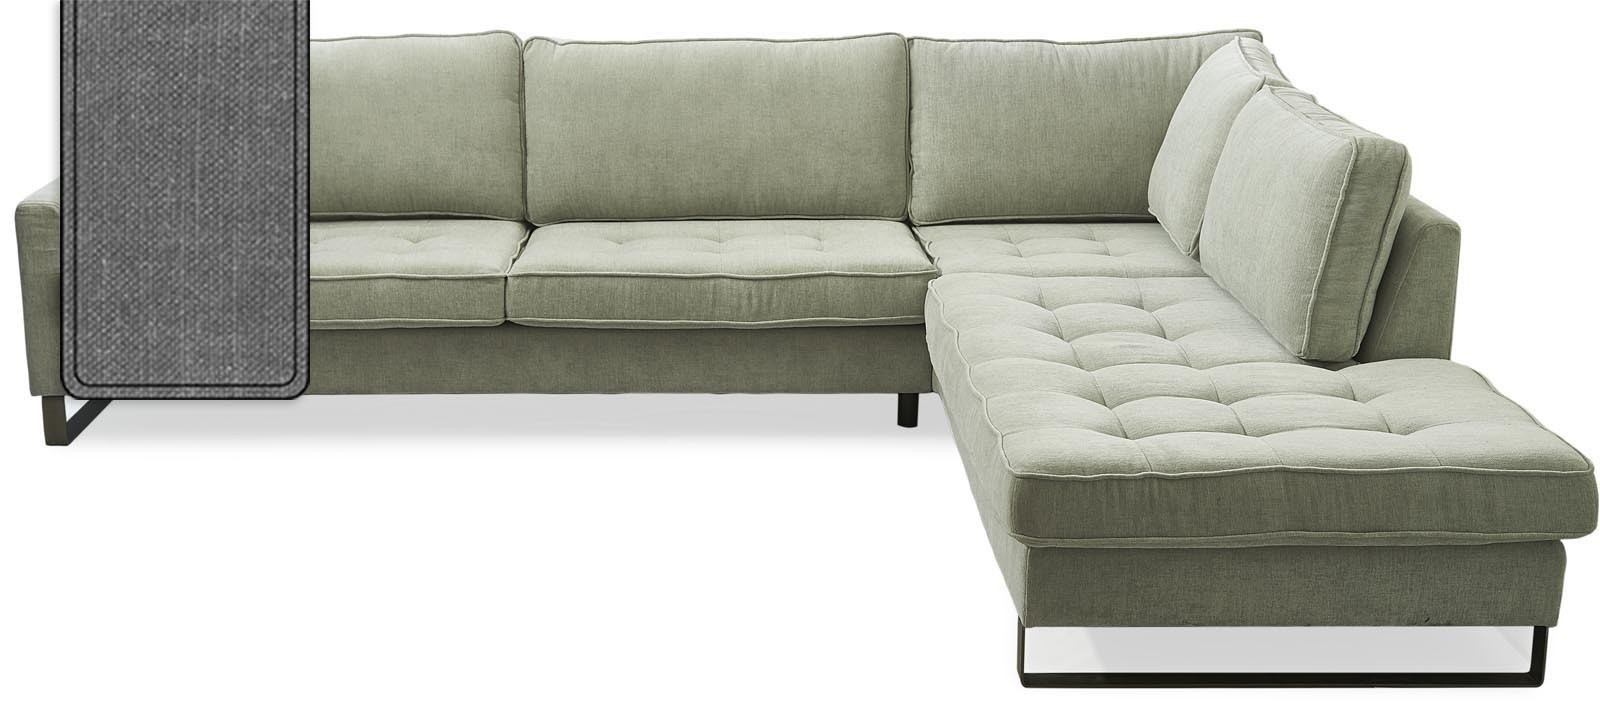 West Houston Corner Sofa Chaise Longue Right Cotton Grey / Rivièra Maison